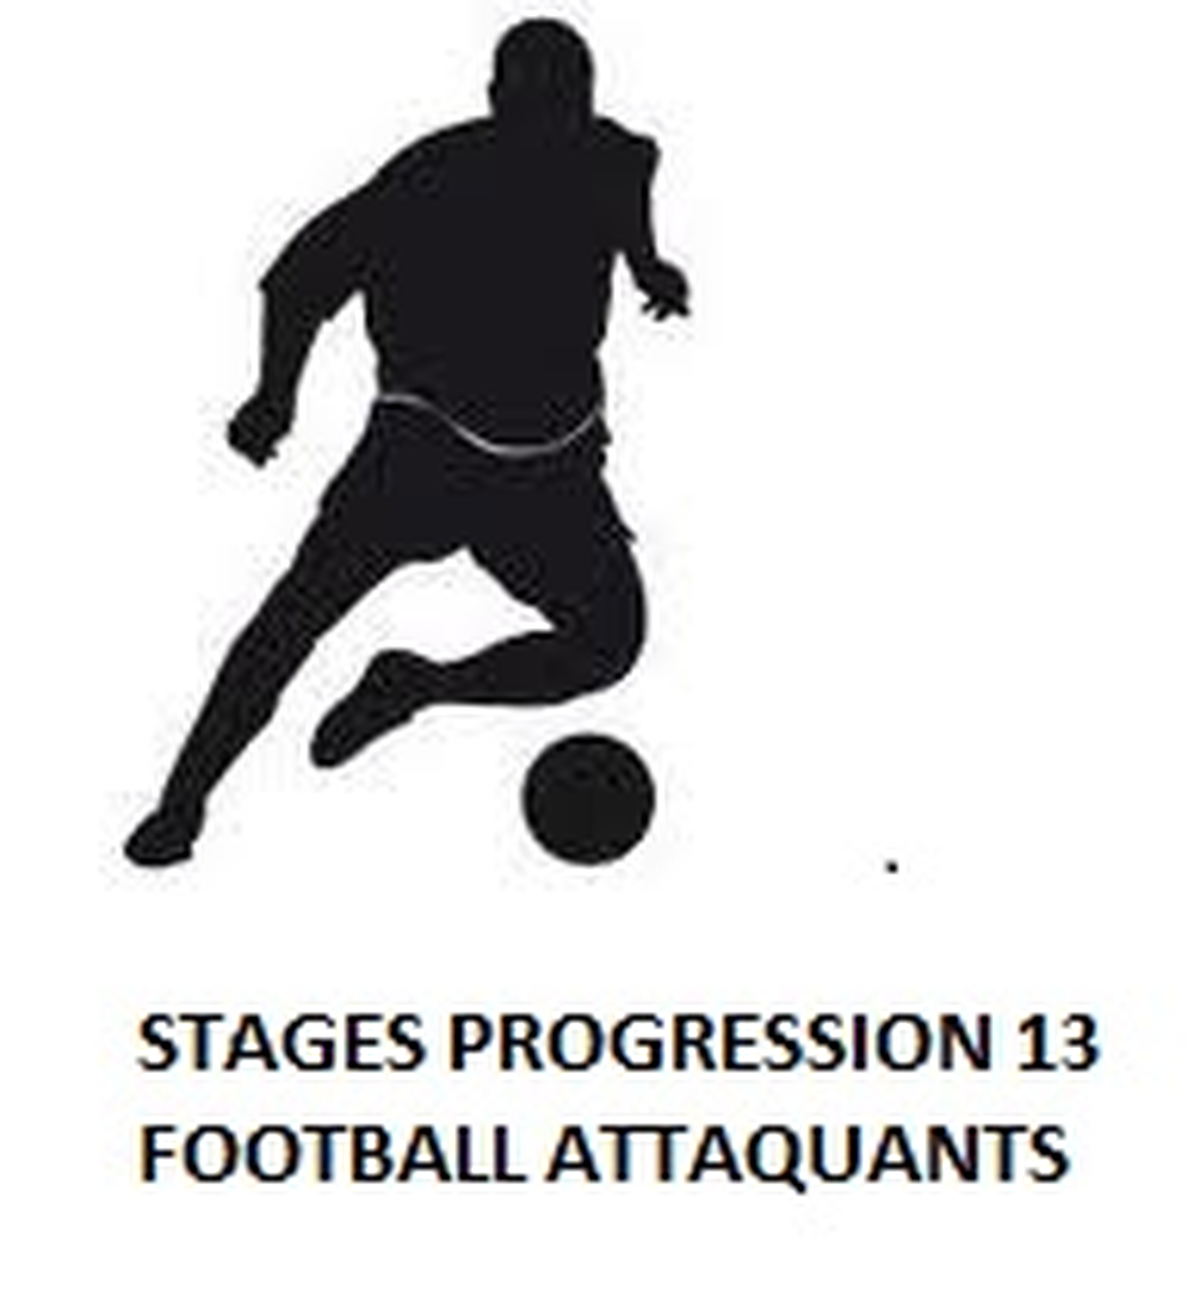 Selection U13 Progression 13